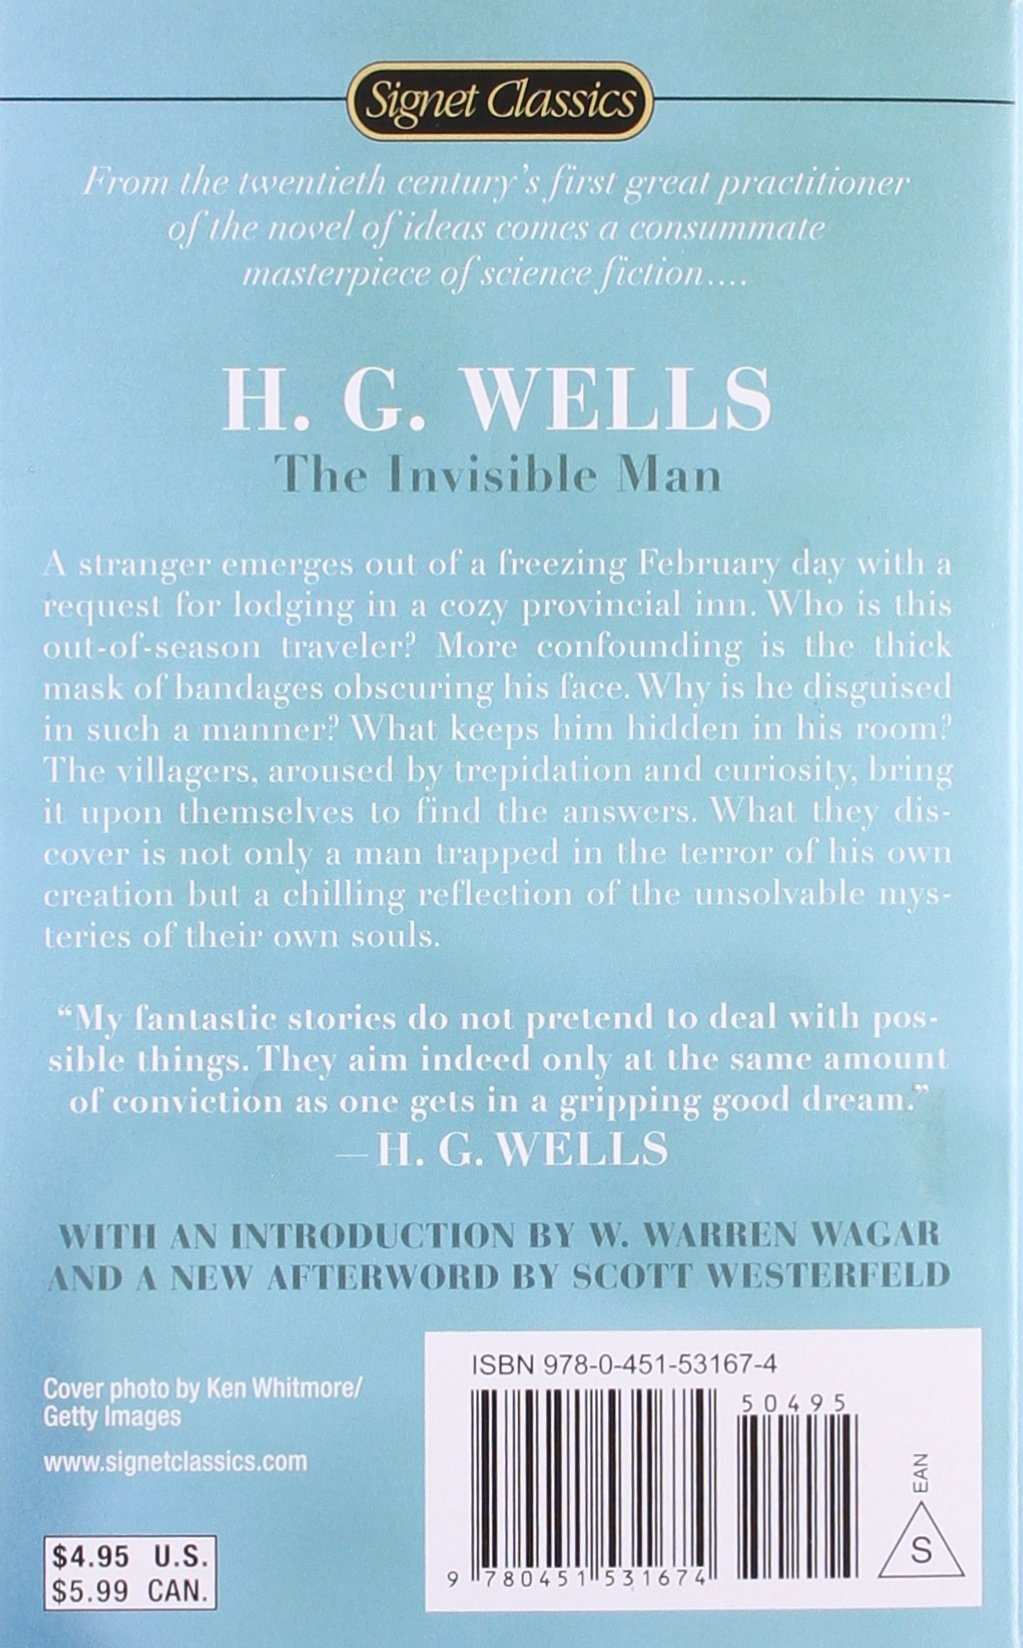 the invisible man signet classics h g wells w warren wagar  the invisible man signet classics h g wells w warren wagar scott westerfeld 9780451531674 amazon com books